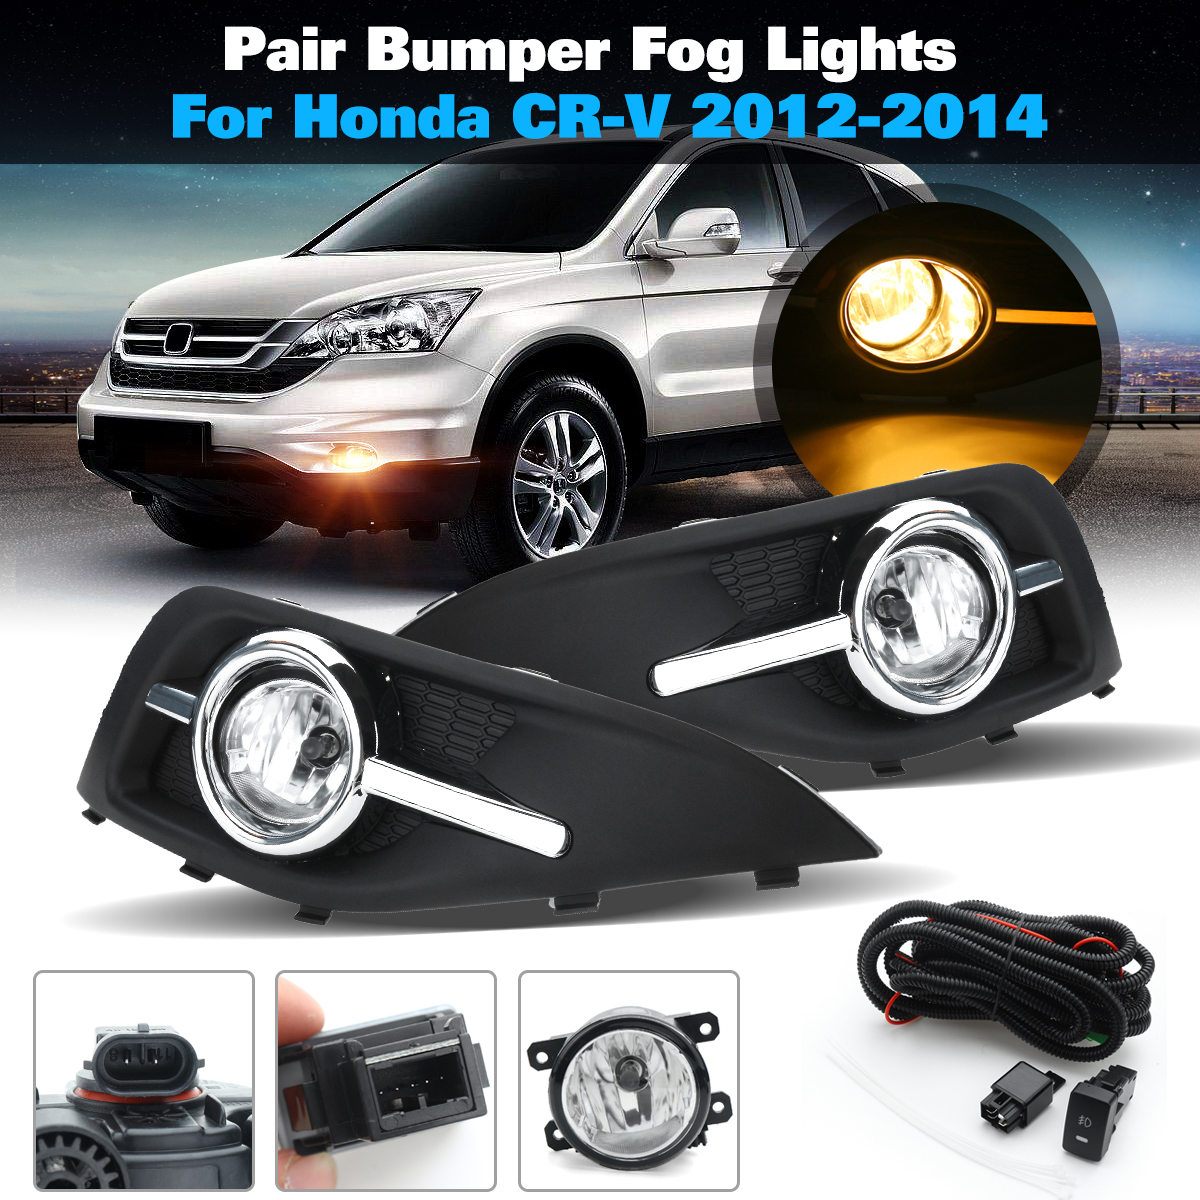 for Honda CRV 2012~2014 Fog Light 12V 55W 1Pair Front Left Right Bumper Fog Light Lamp Grilles w/ Harness Bulb Replacement